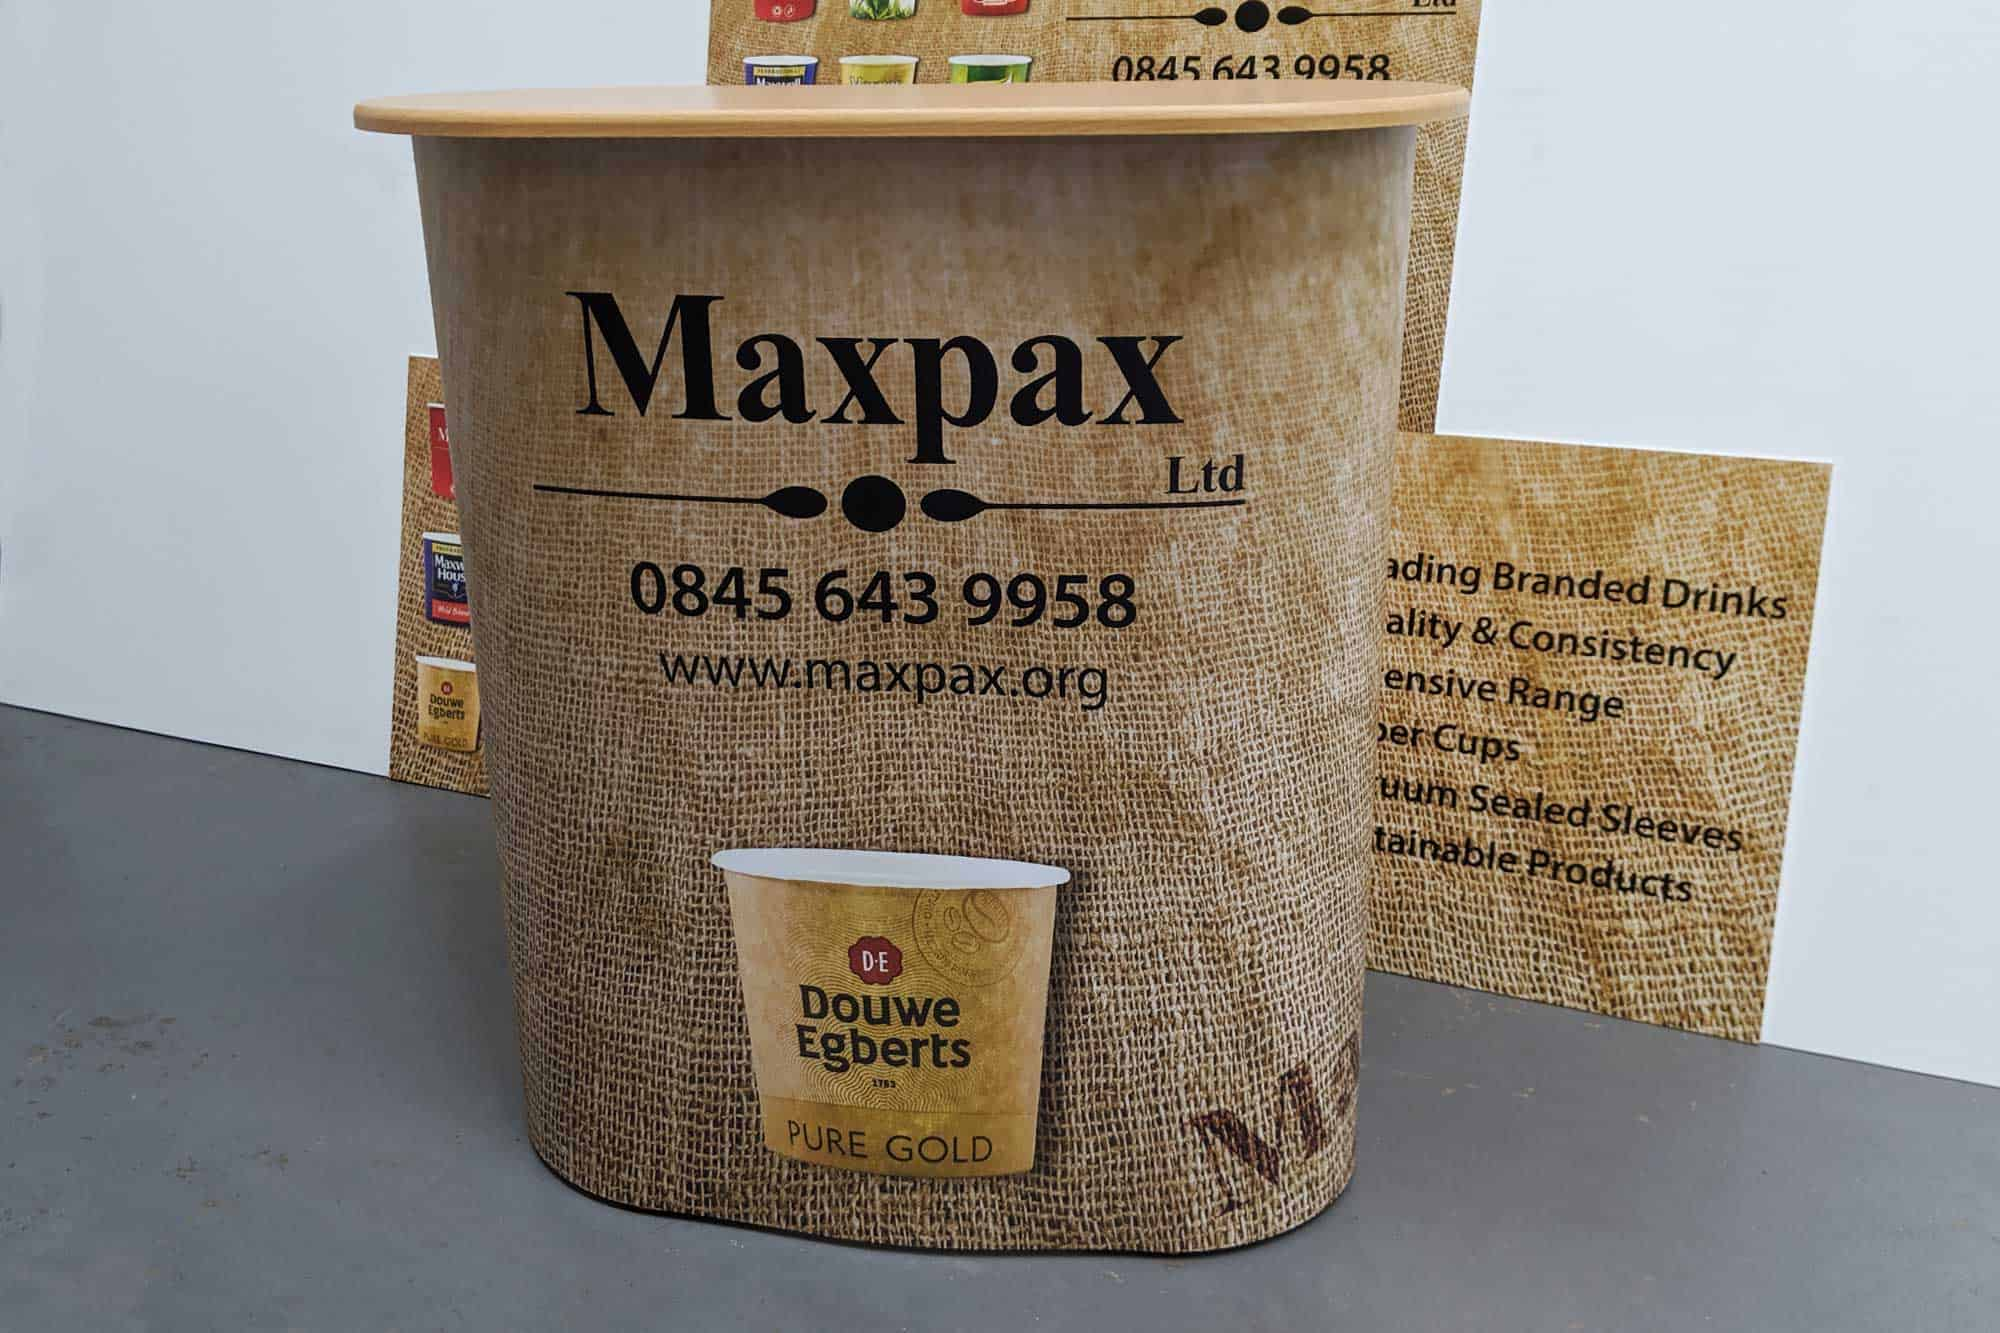 Maxpax exhibition stand table branding